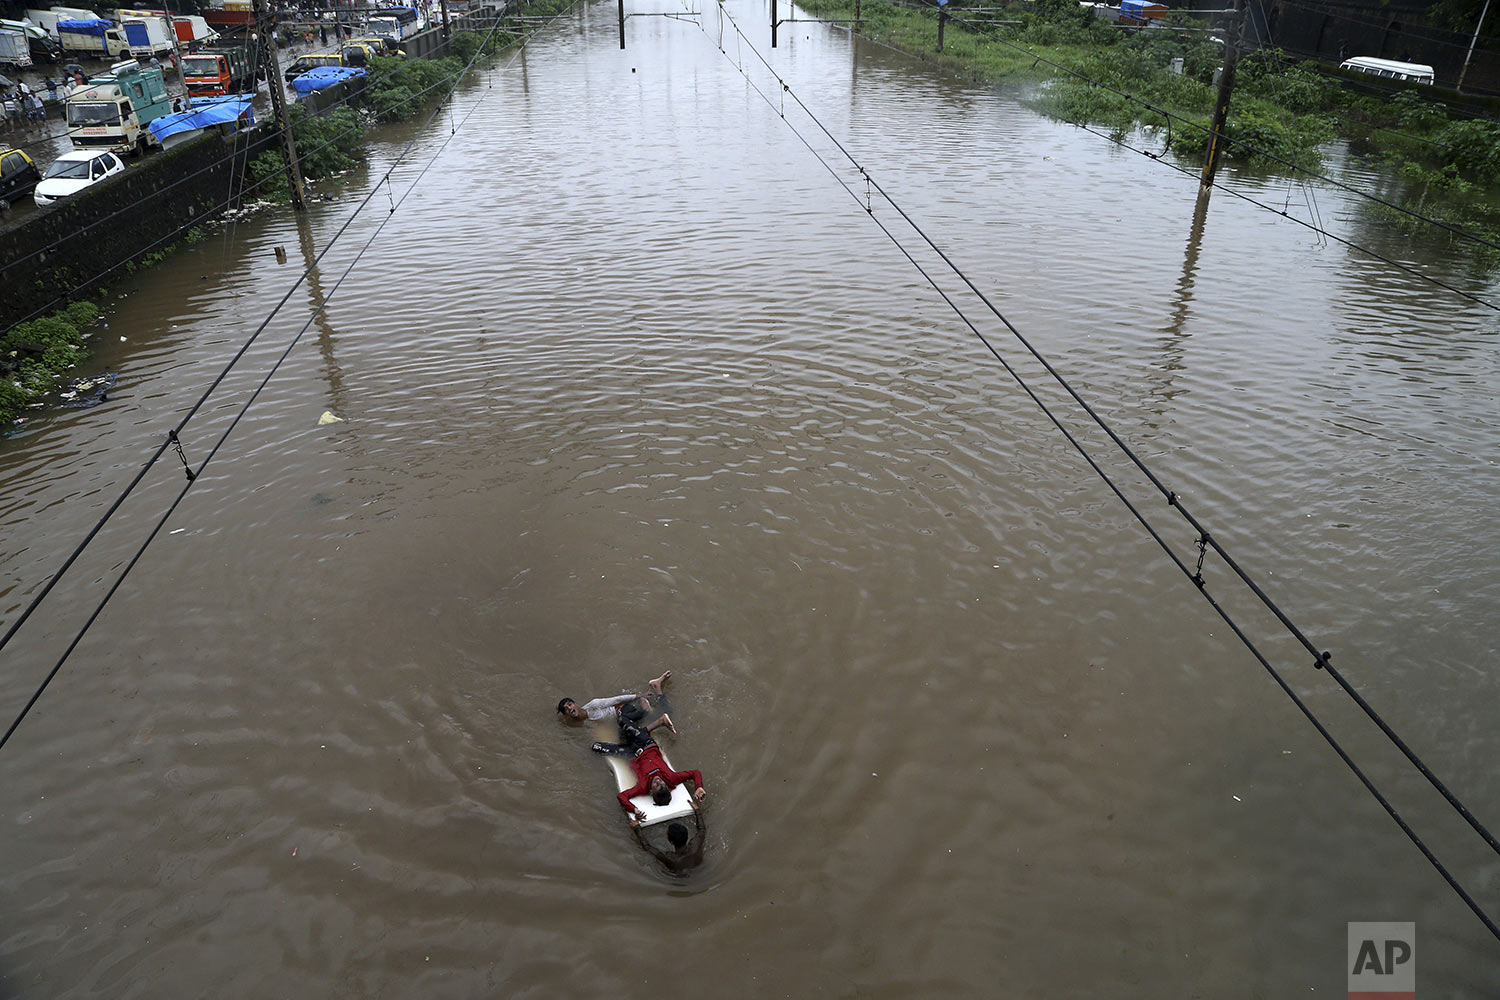 Youth play at a flooded train track following heavy monsoon rains in Mumbai, India, Sunday, Aug. 4, 2019. (AP Photo/Rajanish Kakade)